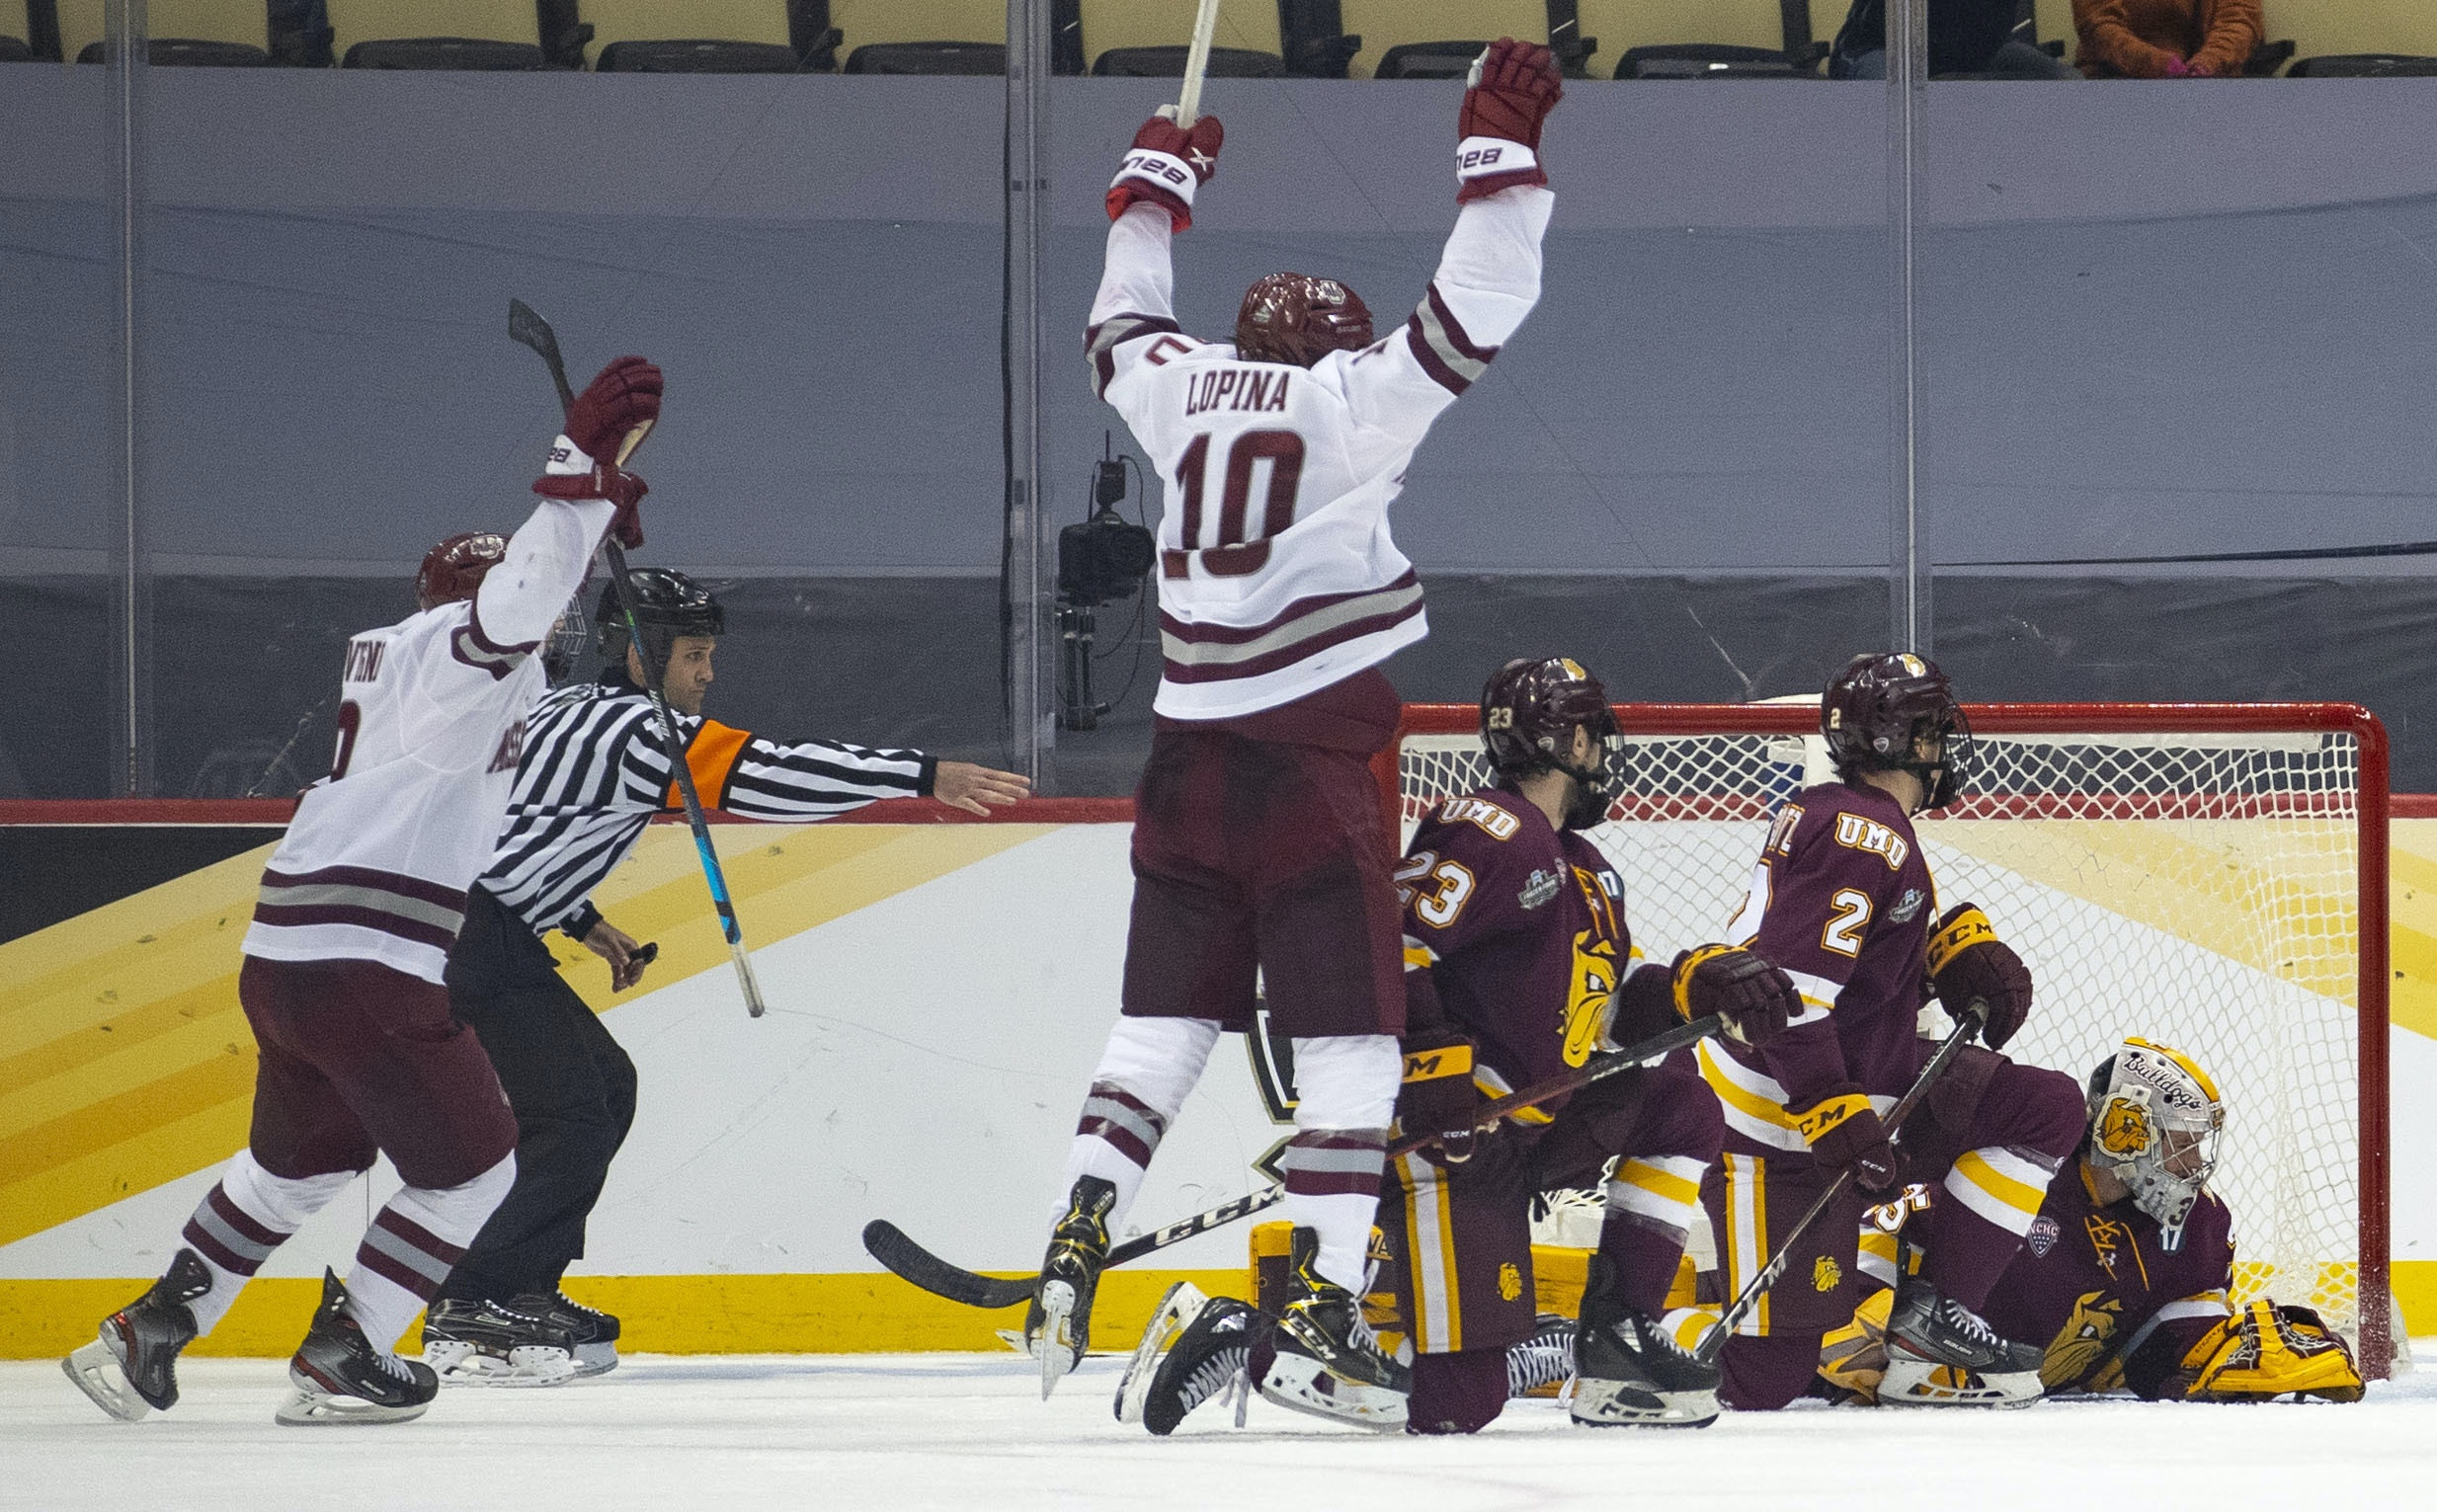 Former Gophers forward Garrett Wait scores in overtime to send UMass over Minnesota Duluth